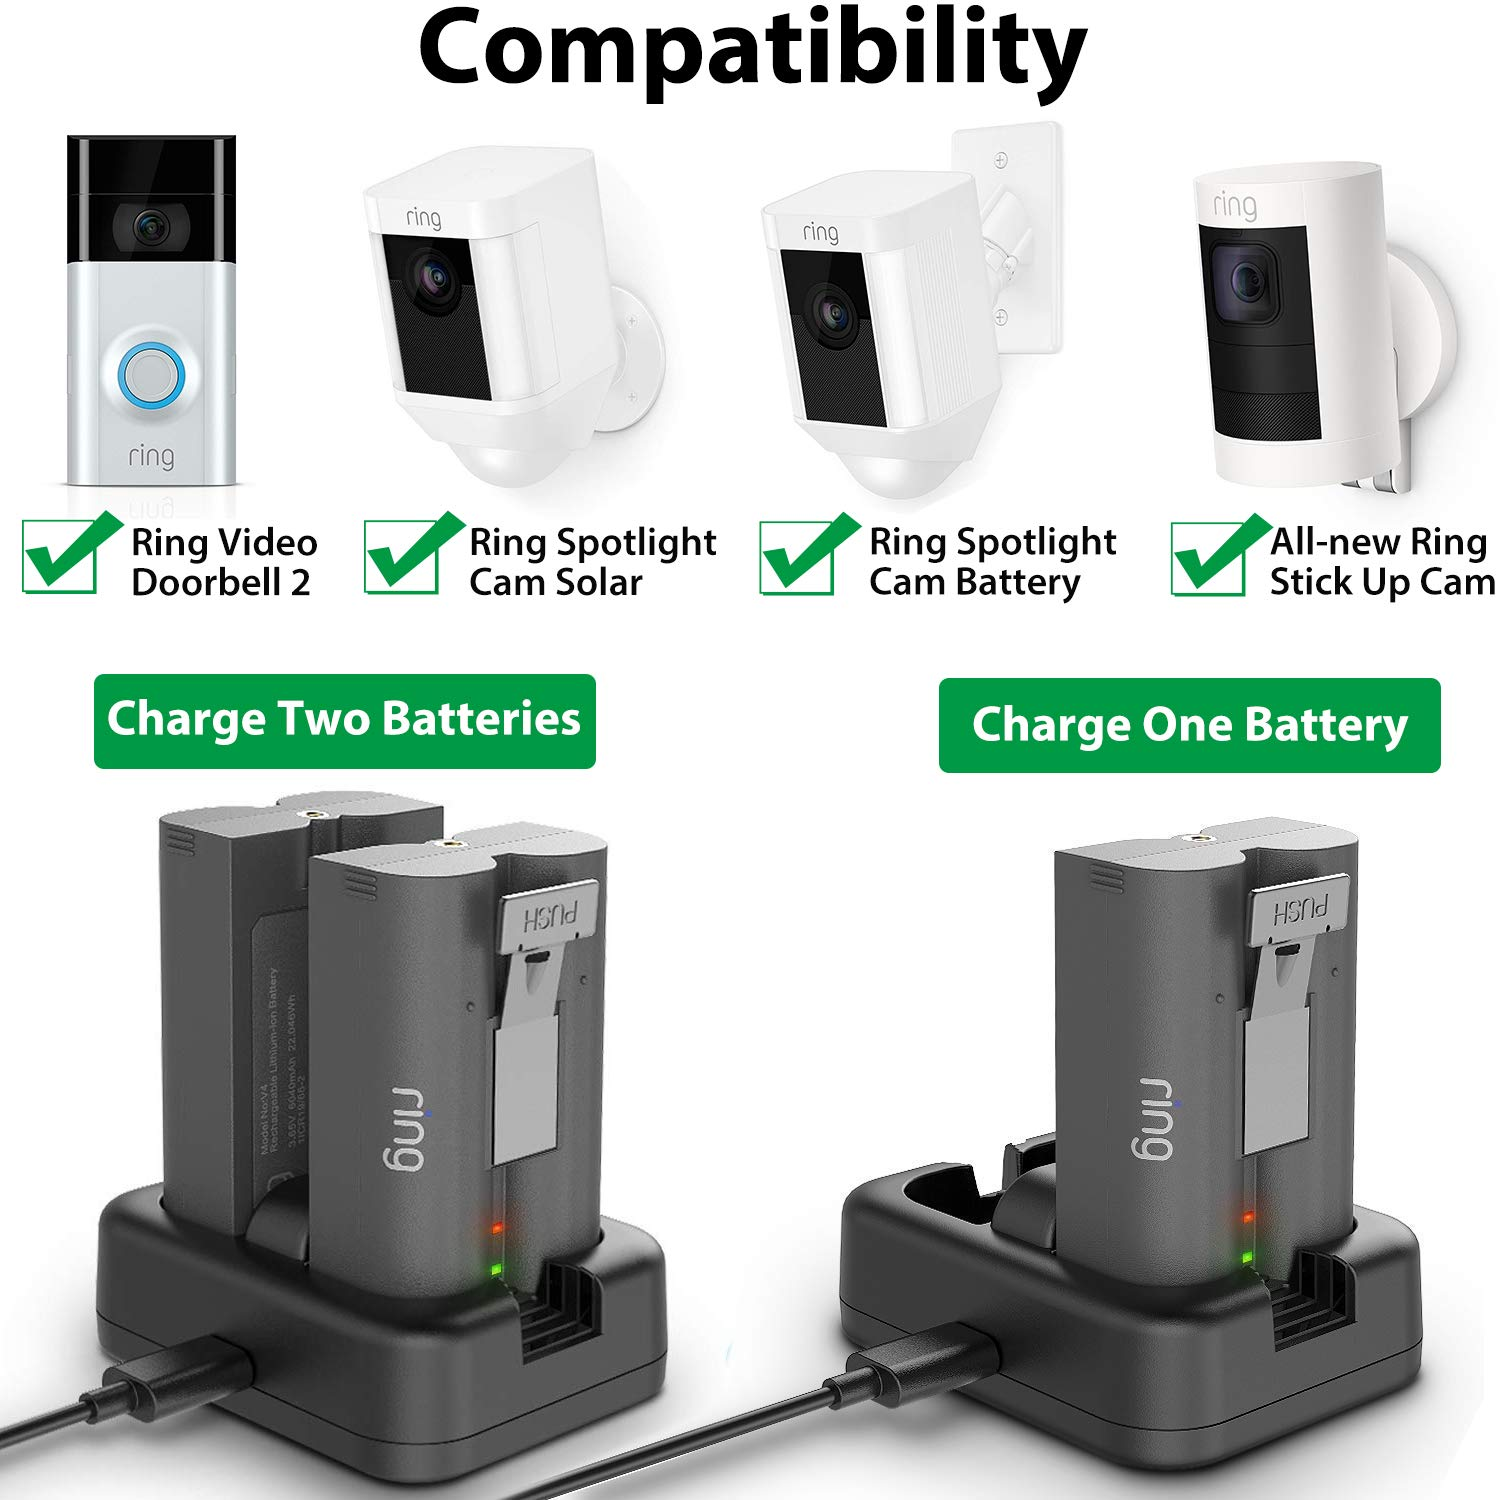 Dual Port Charging Dock with 5V 3A Power Adapter /& Cable Ring Spotlight Cam /& Ring Stick Up Cam Rechargeable Batteries Sunjoyco Quick Charge 3.0 Battery Charger Station for Ring Video Doorbell 2